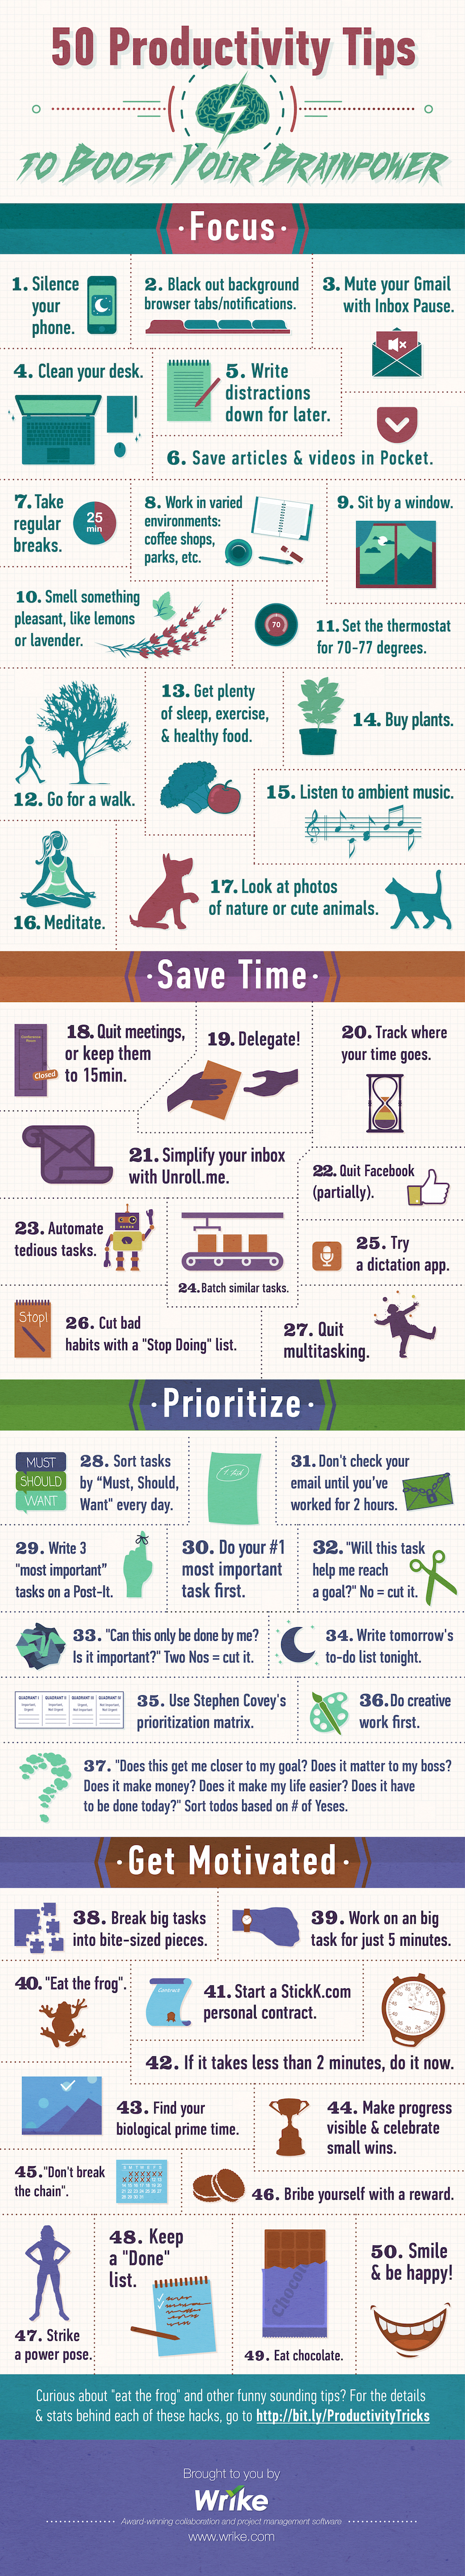 50 Productivity Tips to Boost Your Brainpower - Infographic